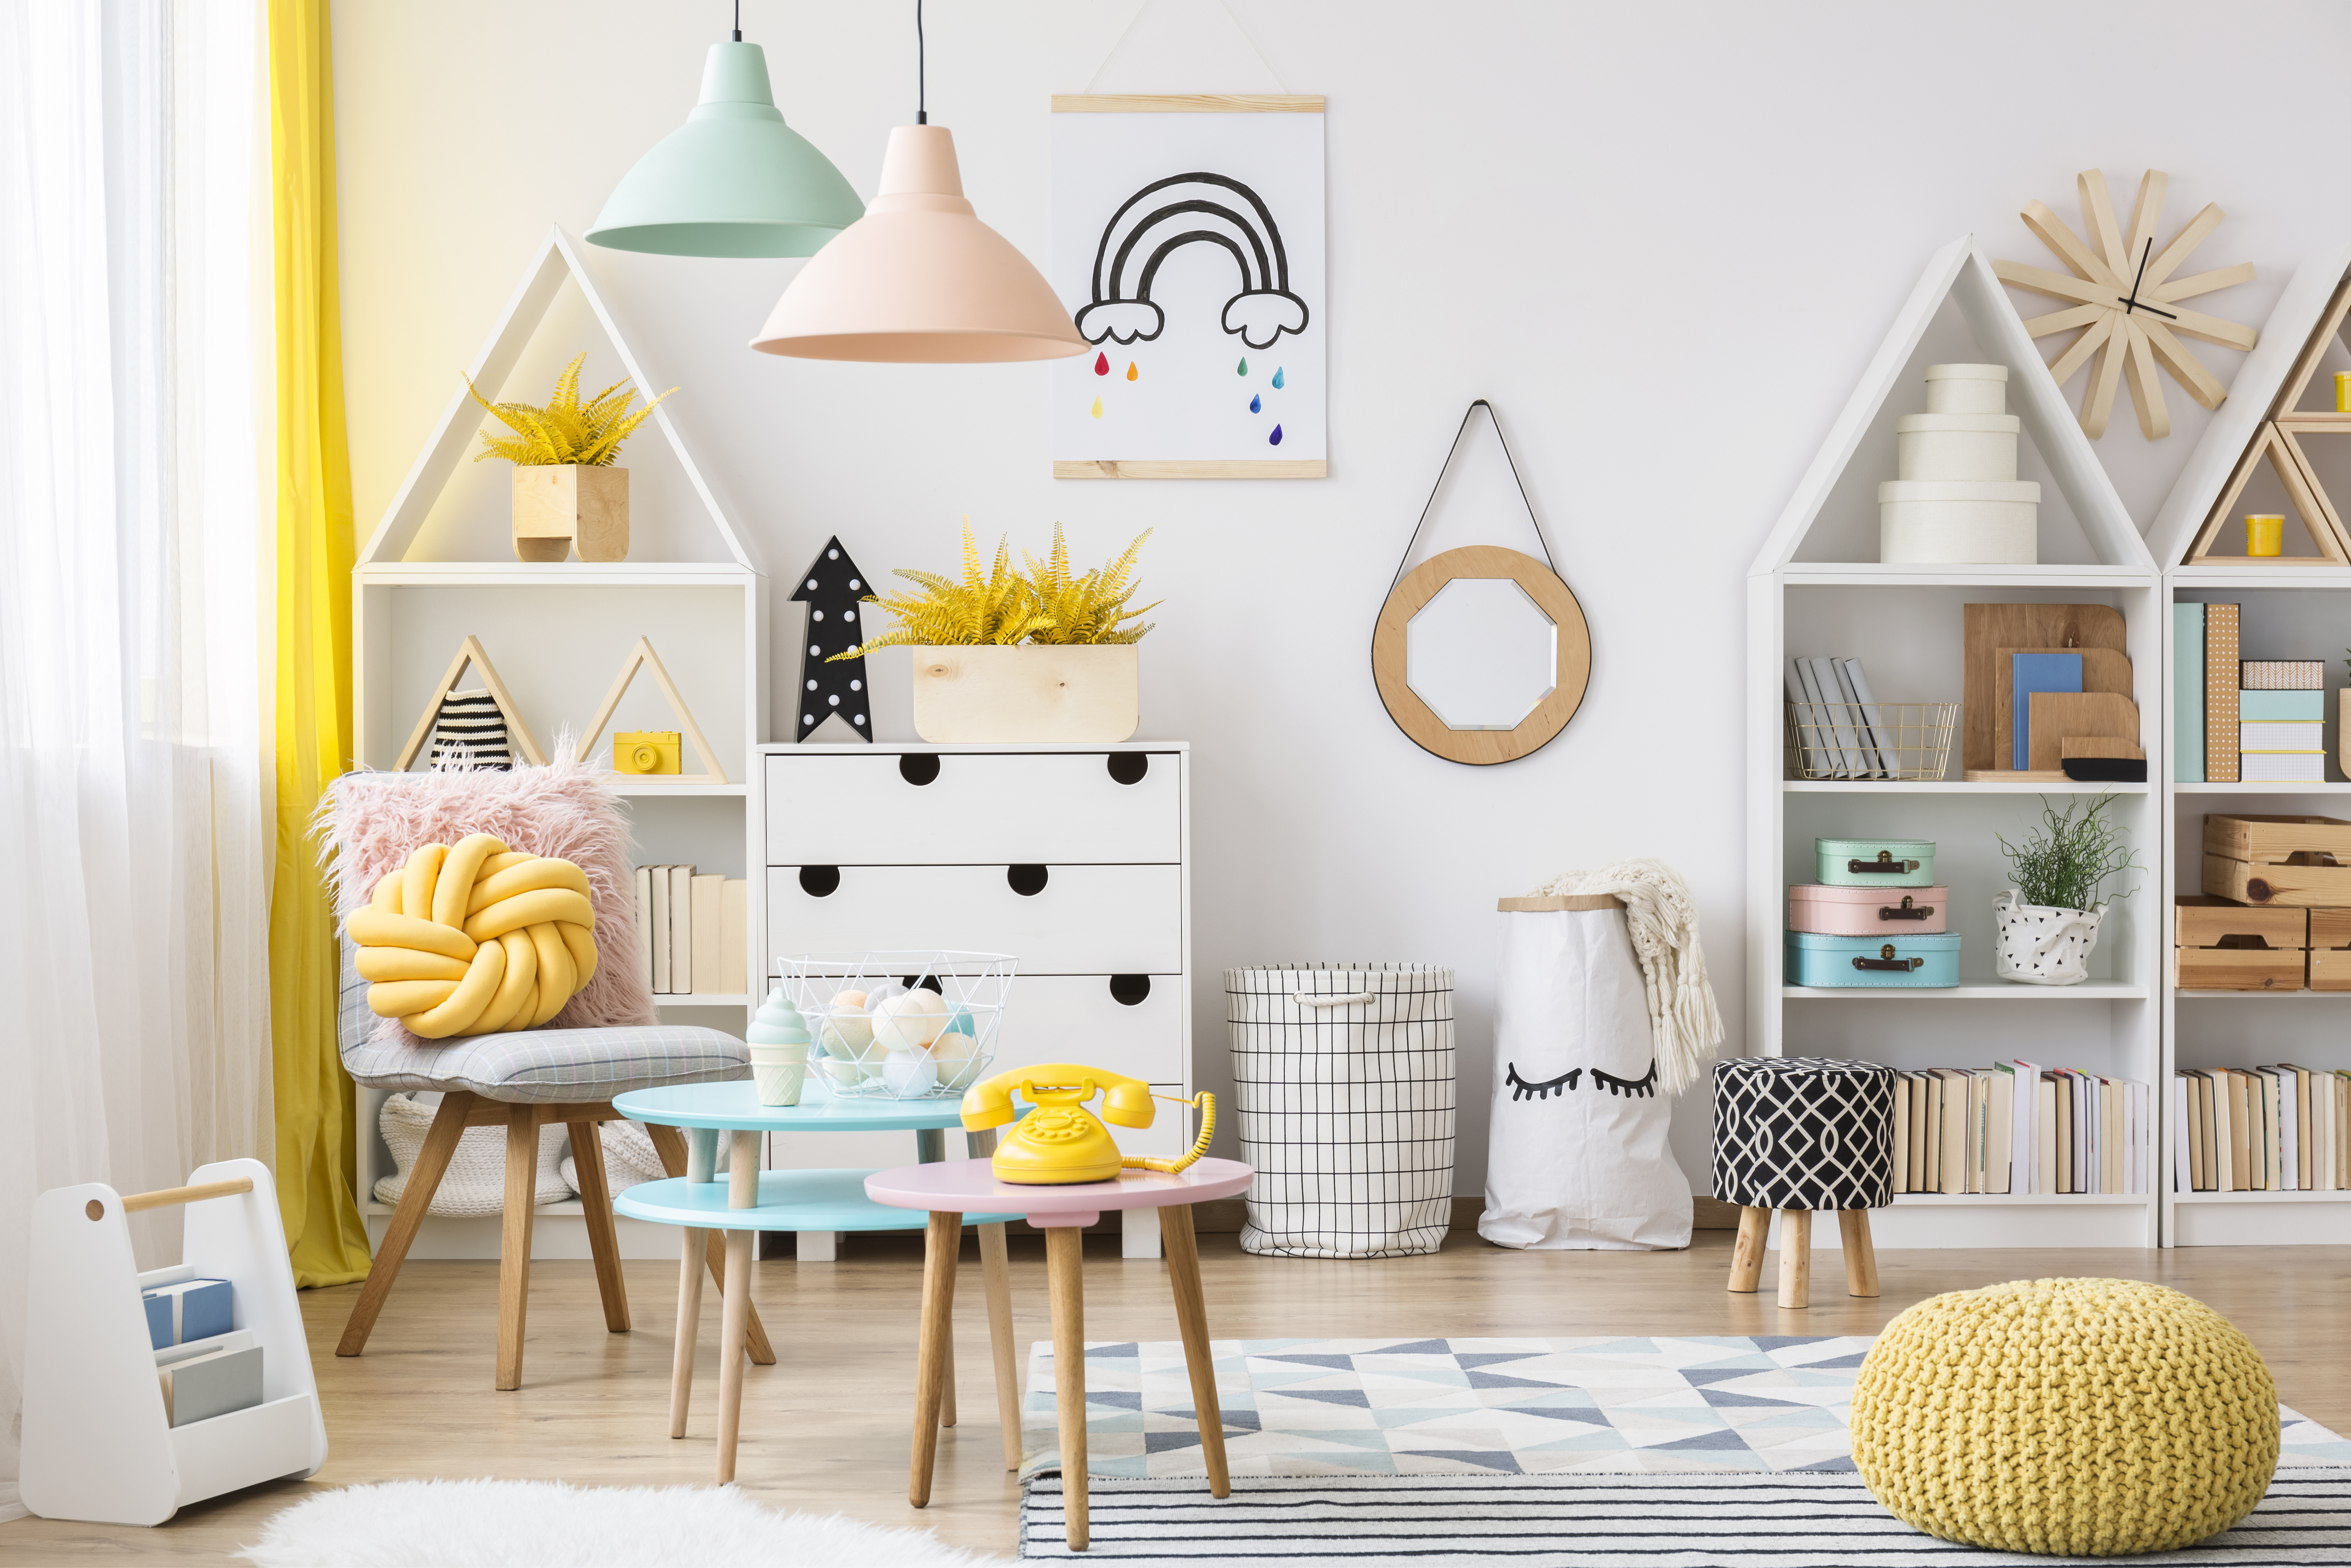 Tips From Local Interior Designers On Creating The Ultimate Playroom Jacksonville Magazine